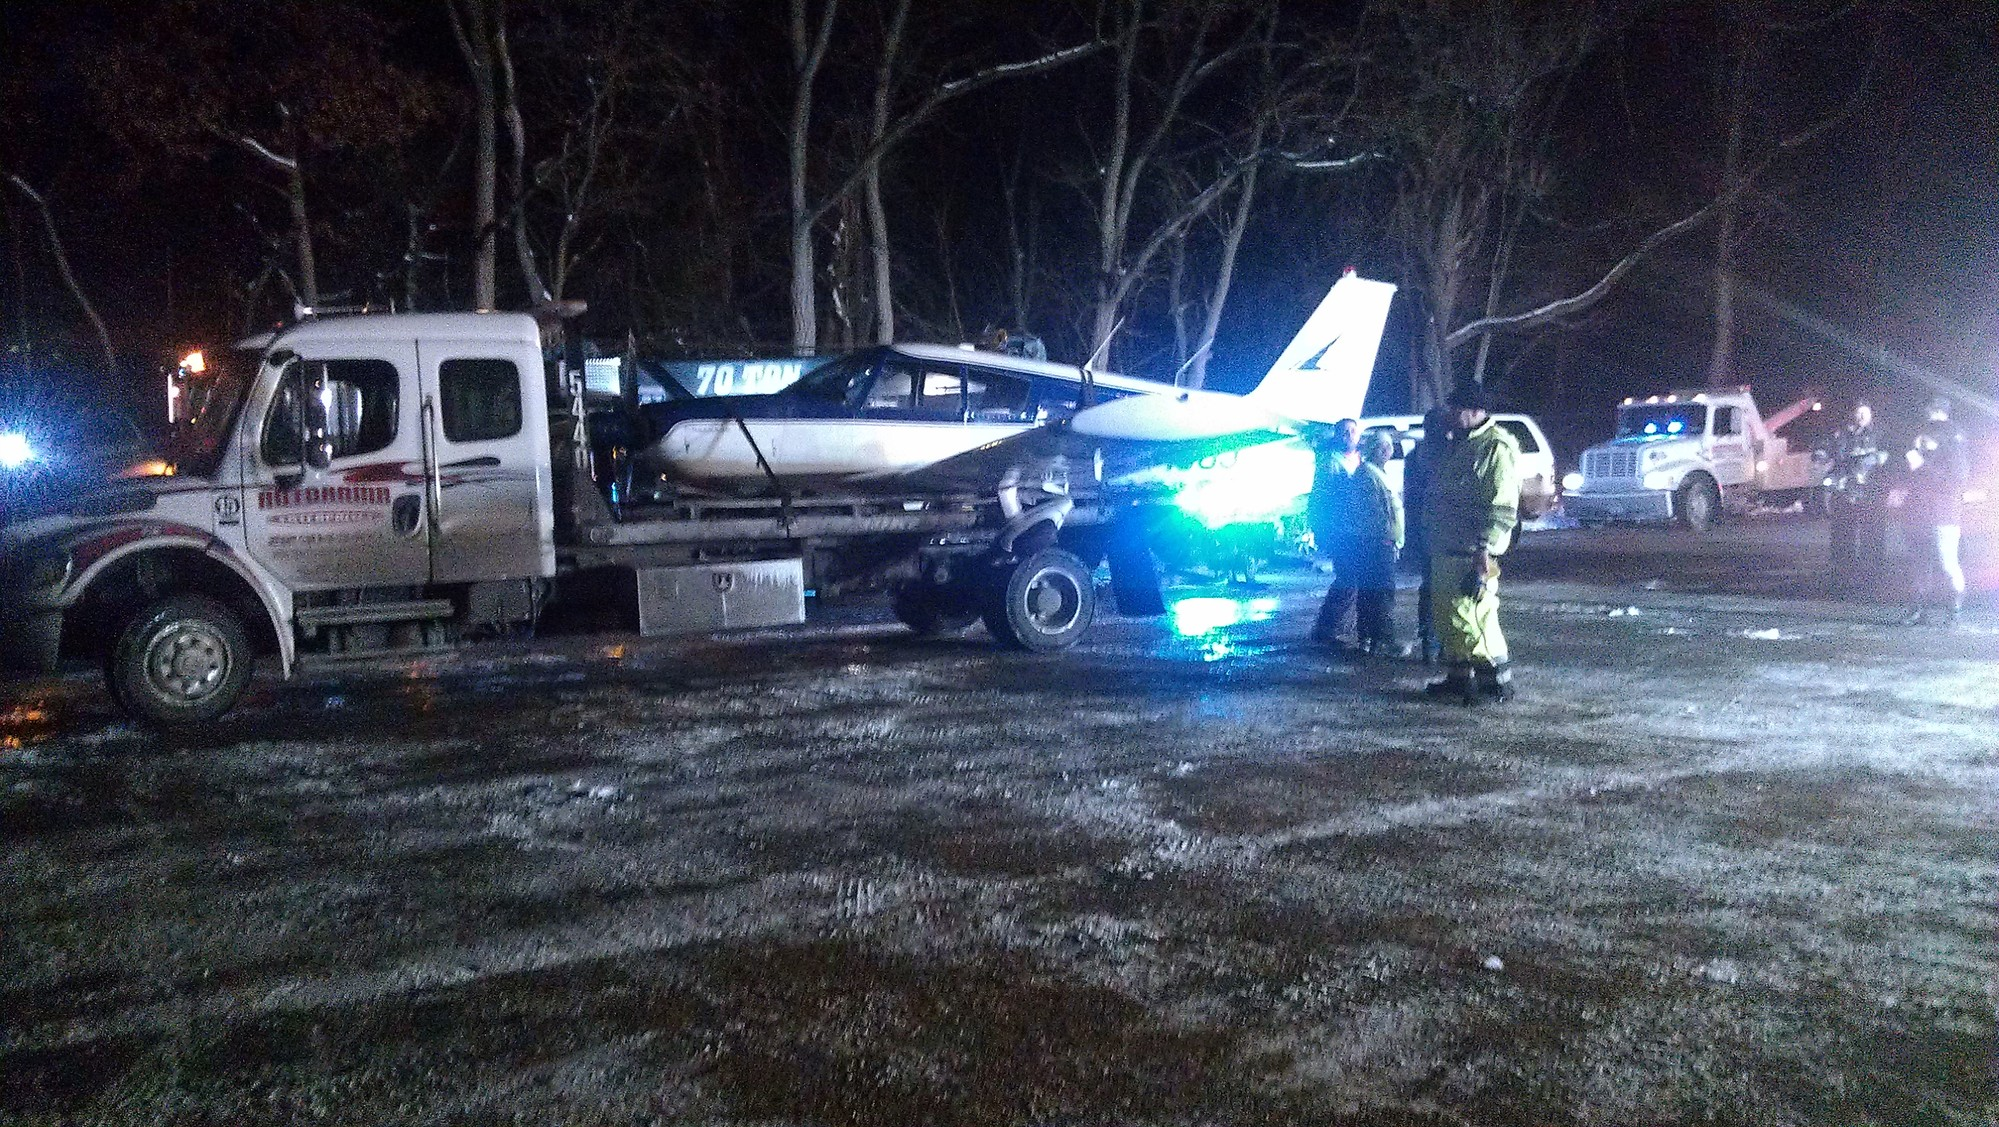 A small plane, which made an emergency landing on the northbound lanes of the Major Deegan Expressway shortly after 3 p.m. on Jan. 4, was towed to a parking lot just south of the Van Cortlandt Park golf course nearly three hours later.